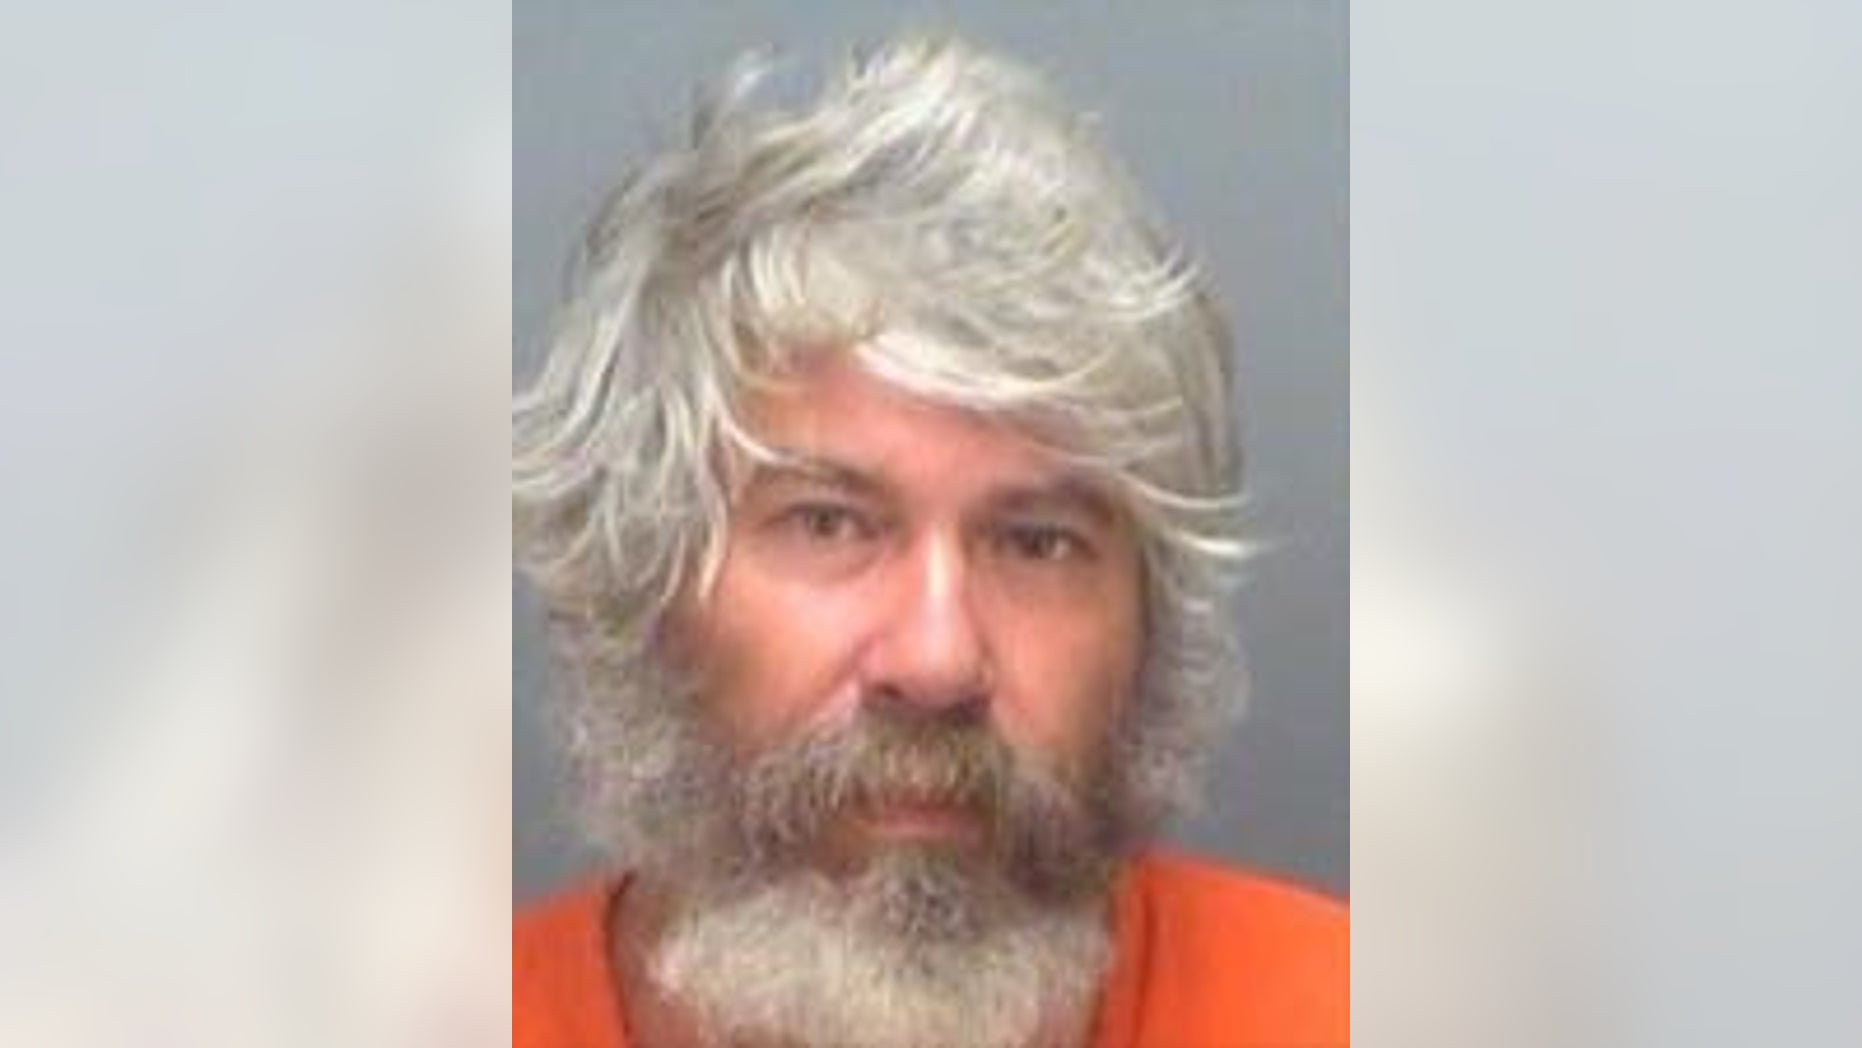 James Bundrick, 56, who claimed his name was Captain Kirk, was arrested on Monday.